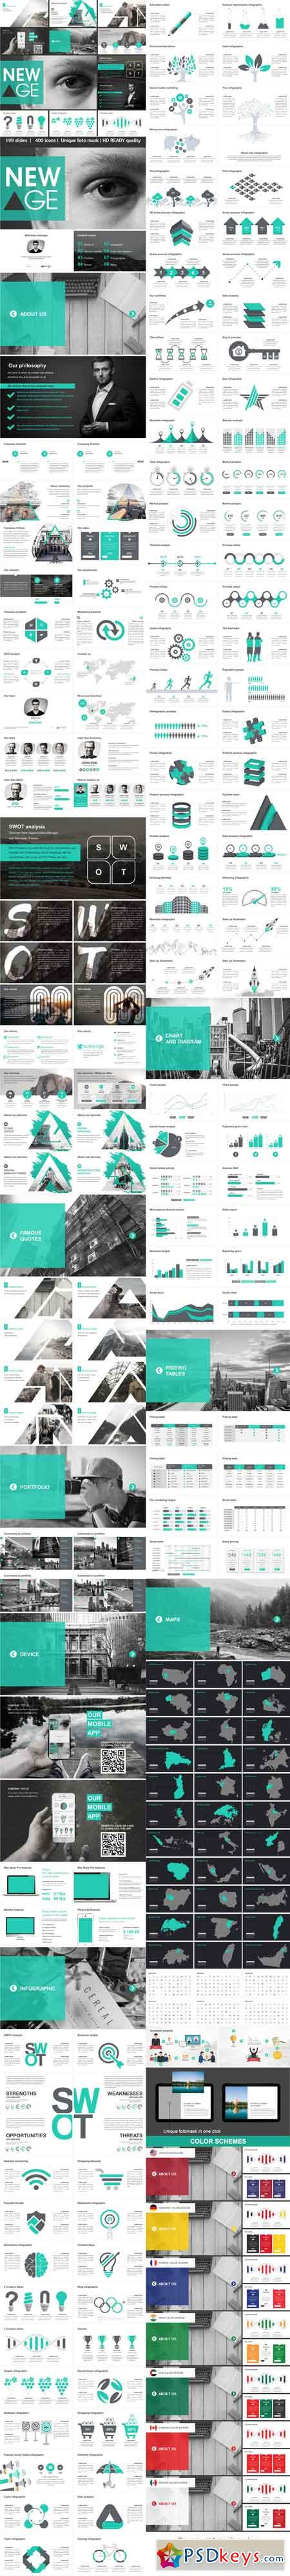 New Age Creative Powerpoint Template 17659484 Free